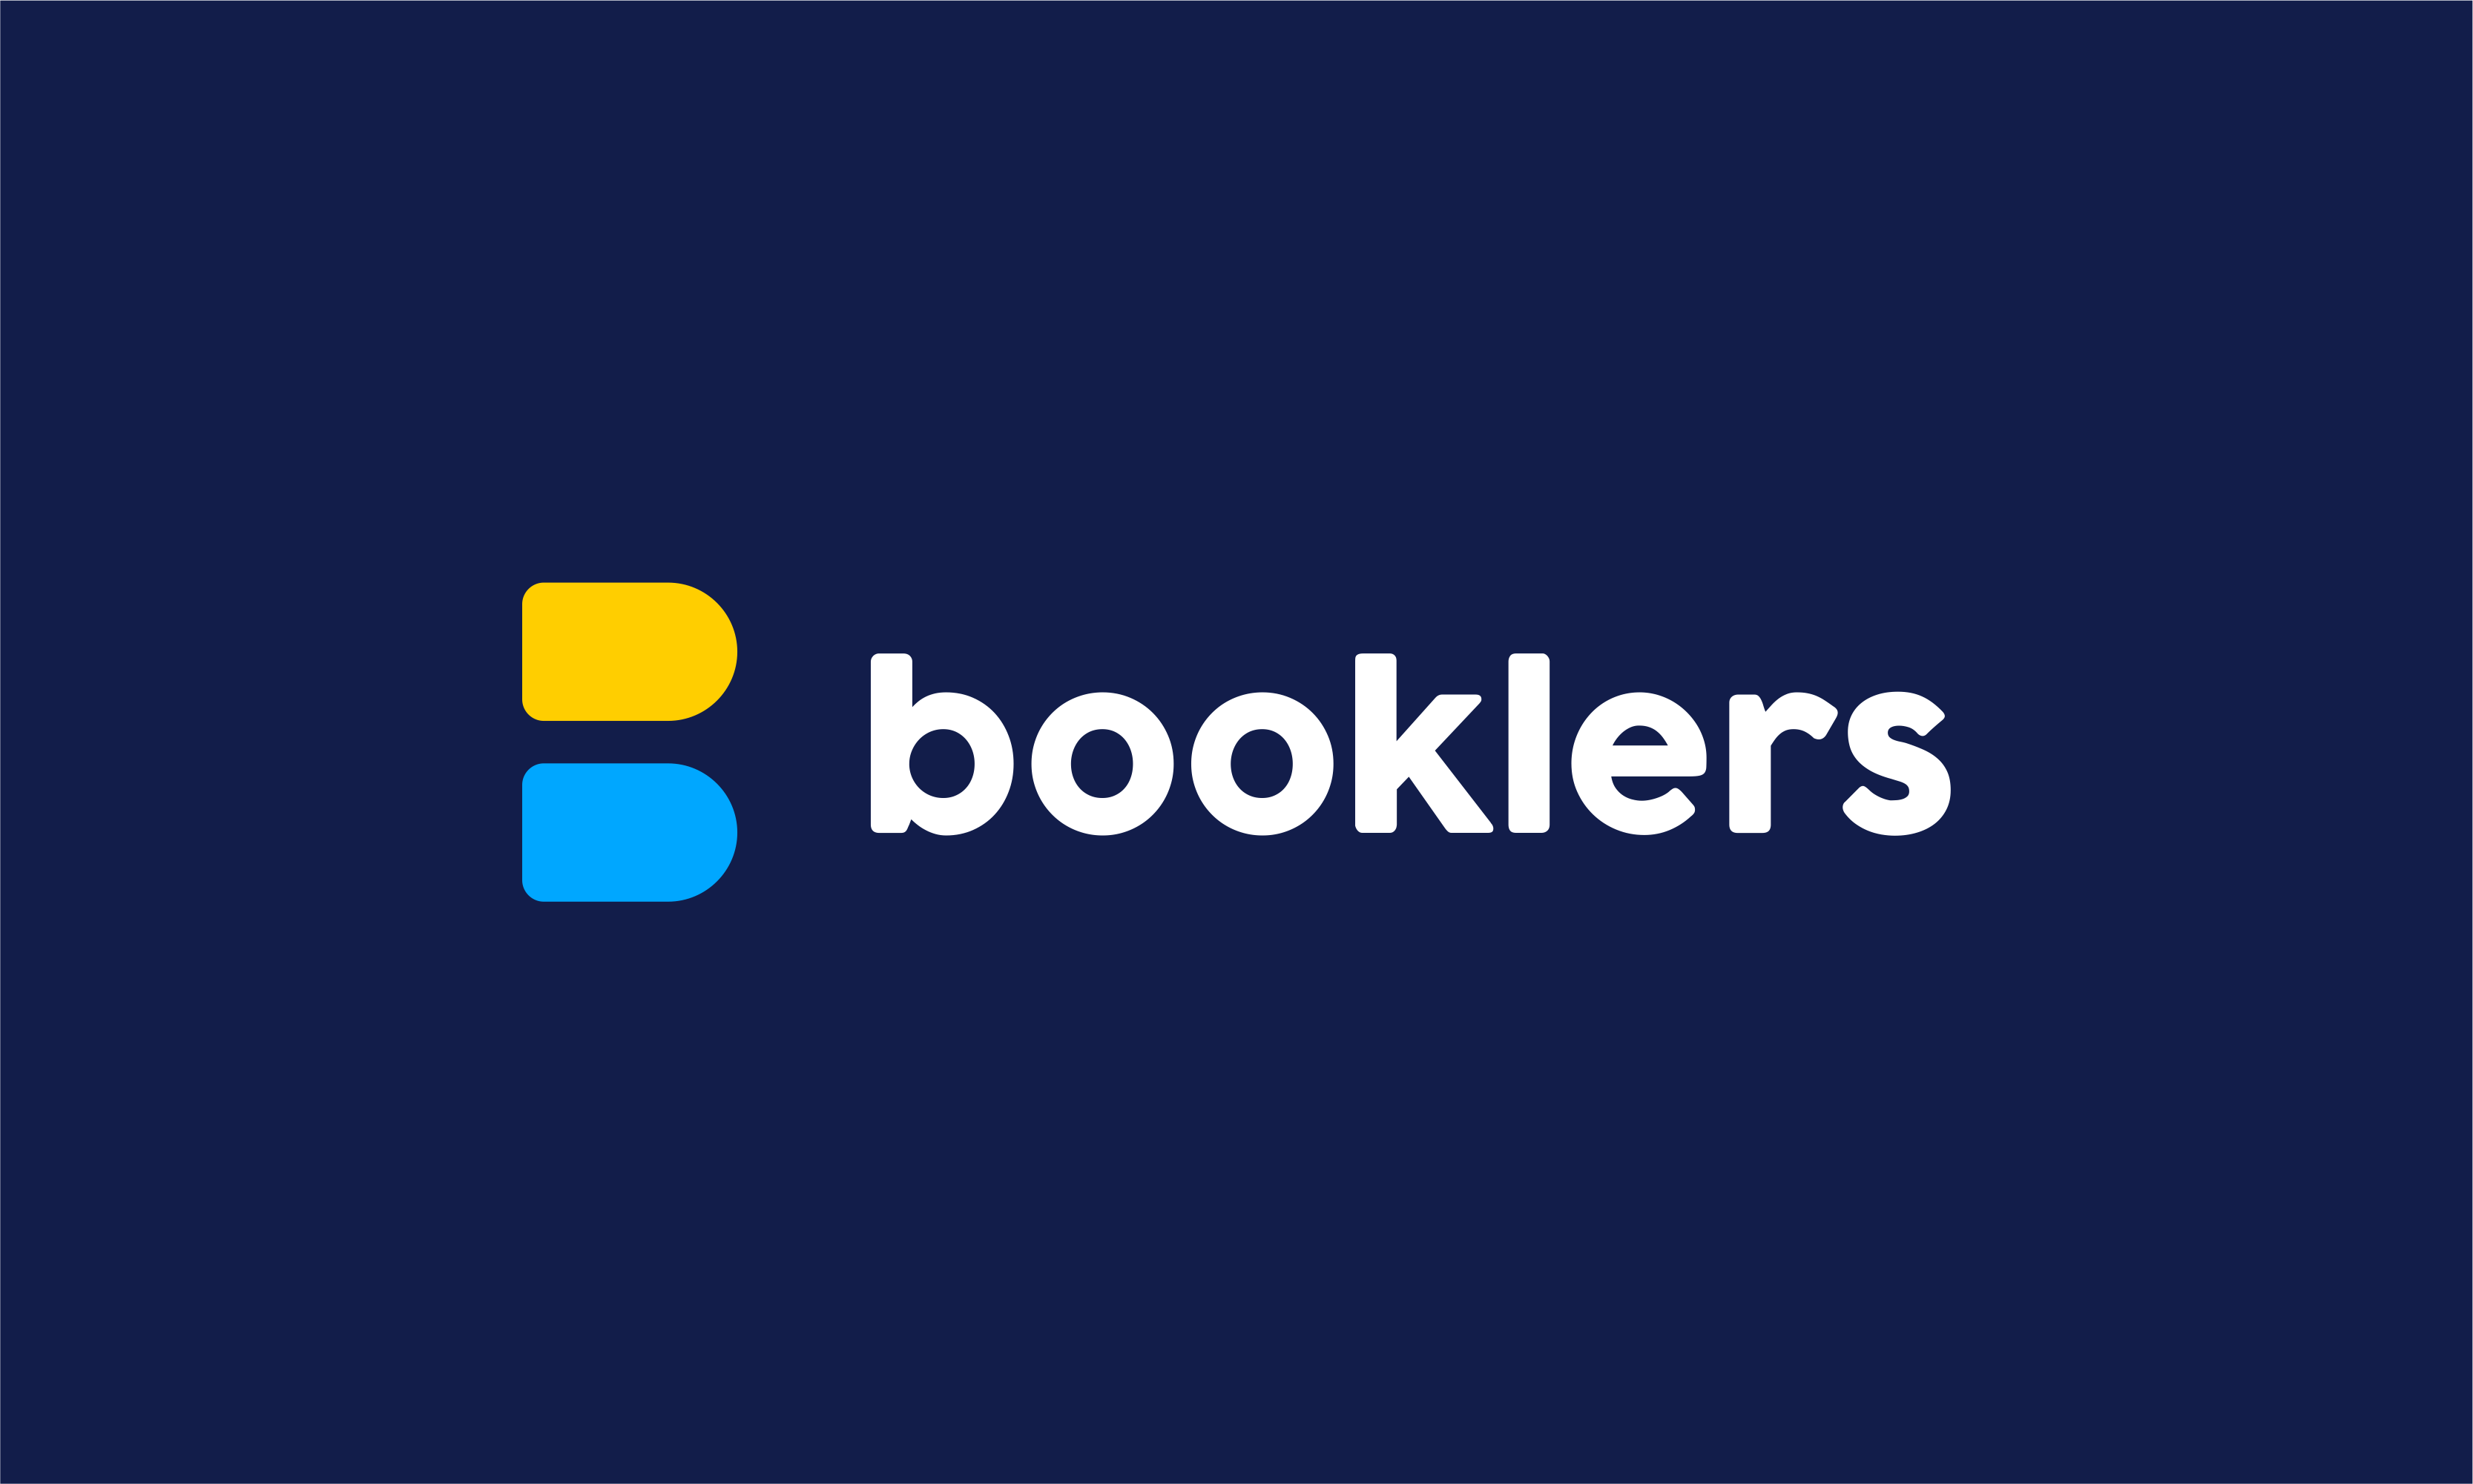 Booklers